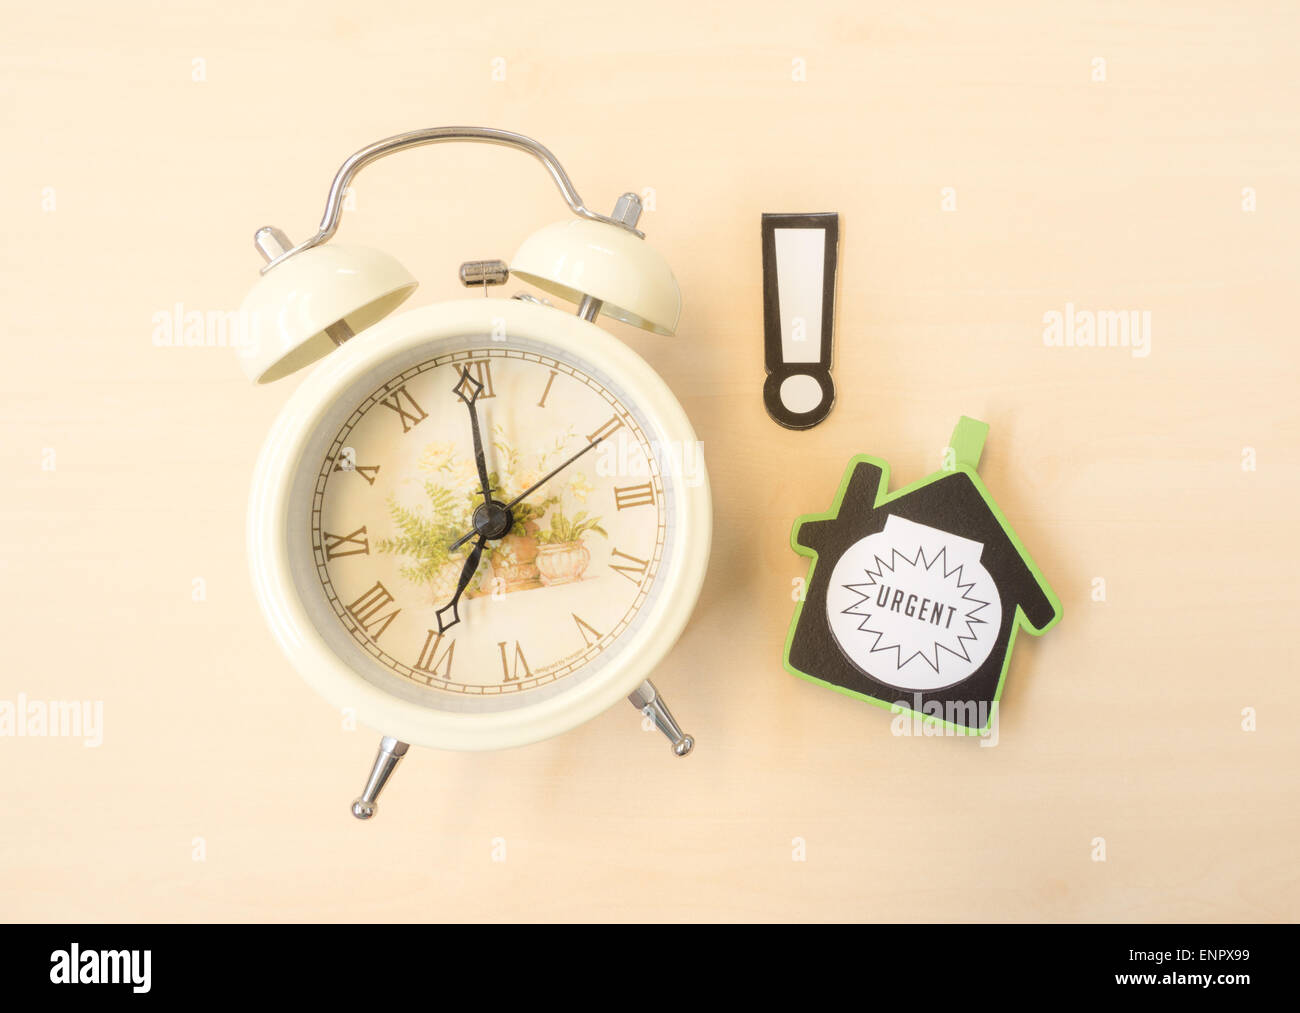 White Clock with Alert and Urgent Sign - Stock Image